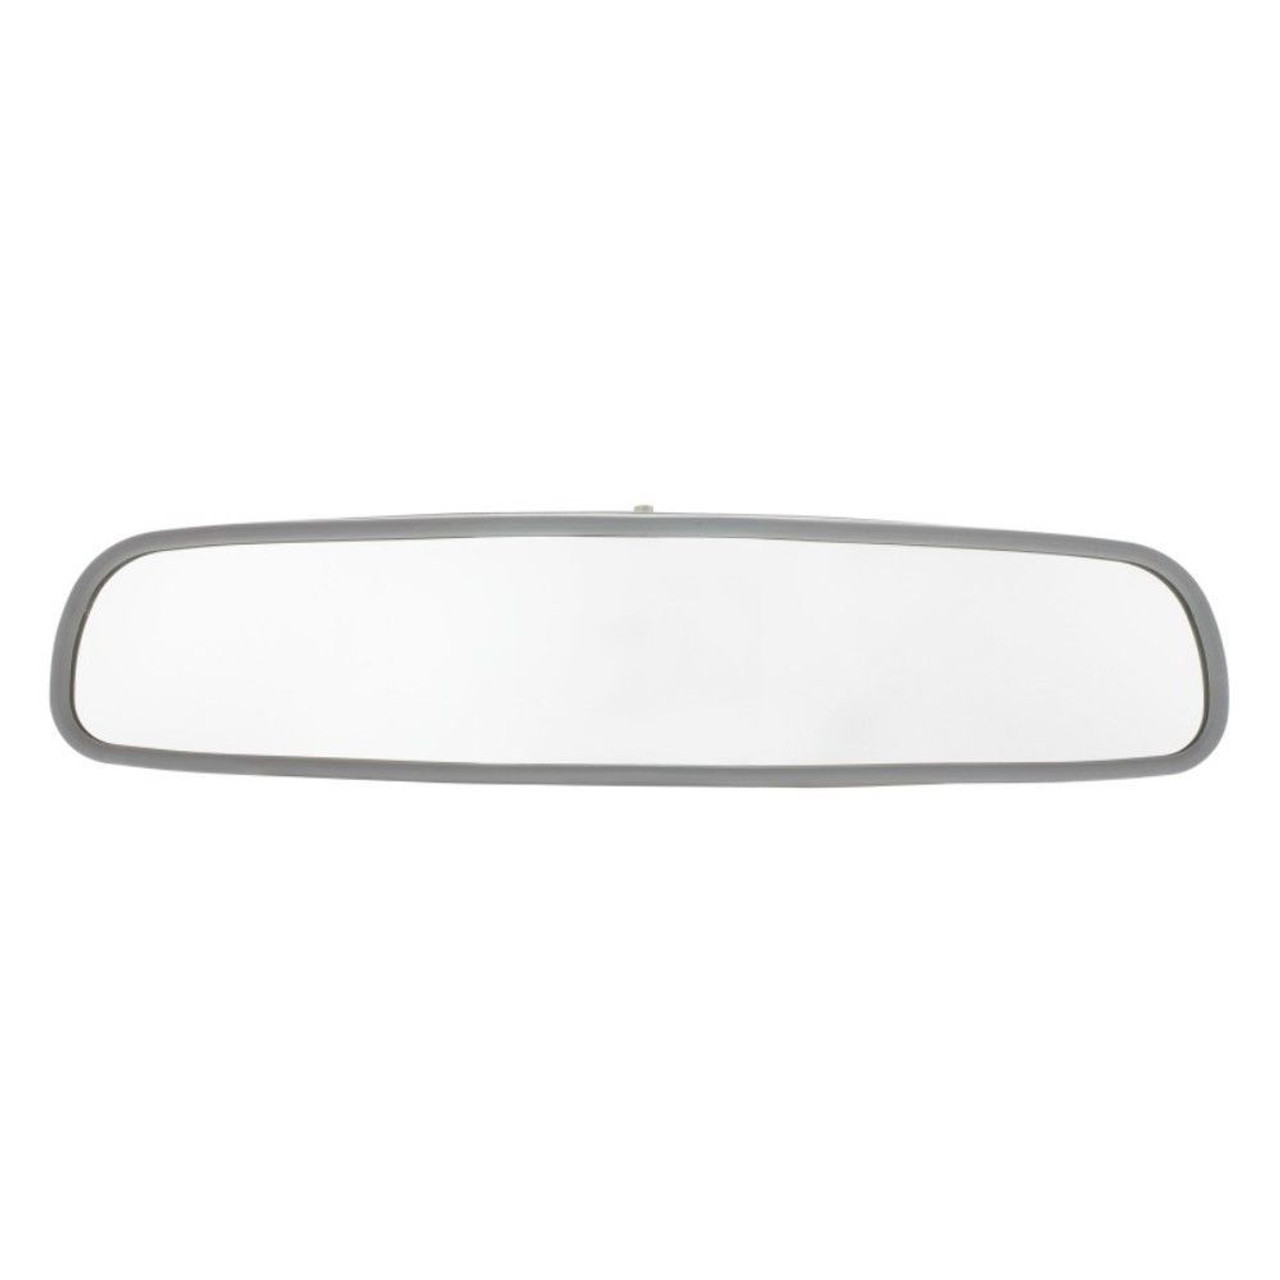 "1964-72 Chevy Day/Night Mirror - 10"" - Camaro, Chevelle, Impala, Nova, GM Full"